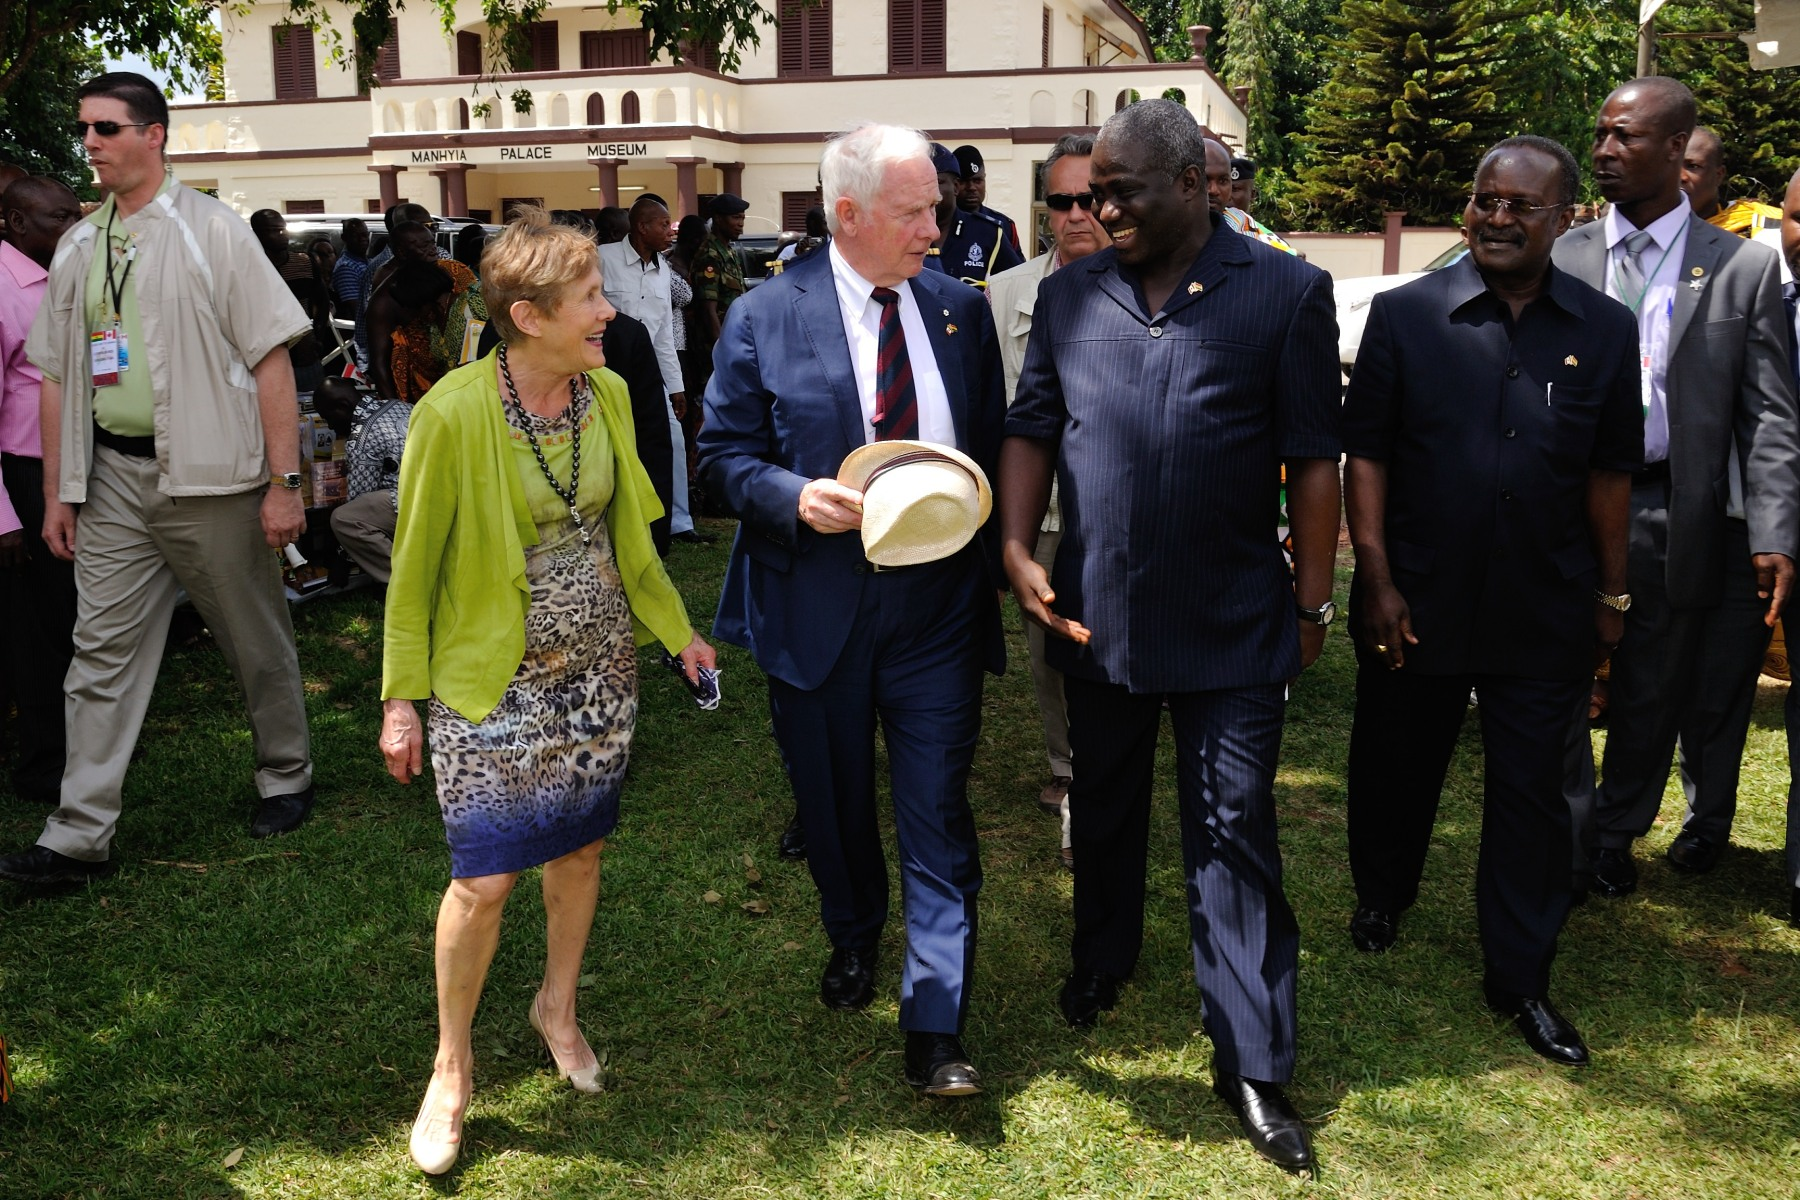 In the afternoon, Their Excellencies visited the Manhyia Palace.